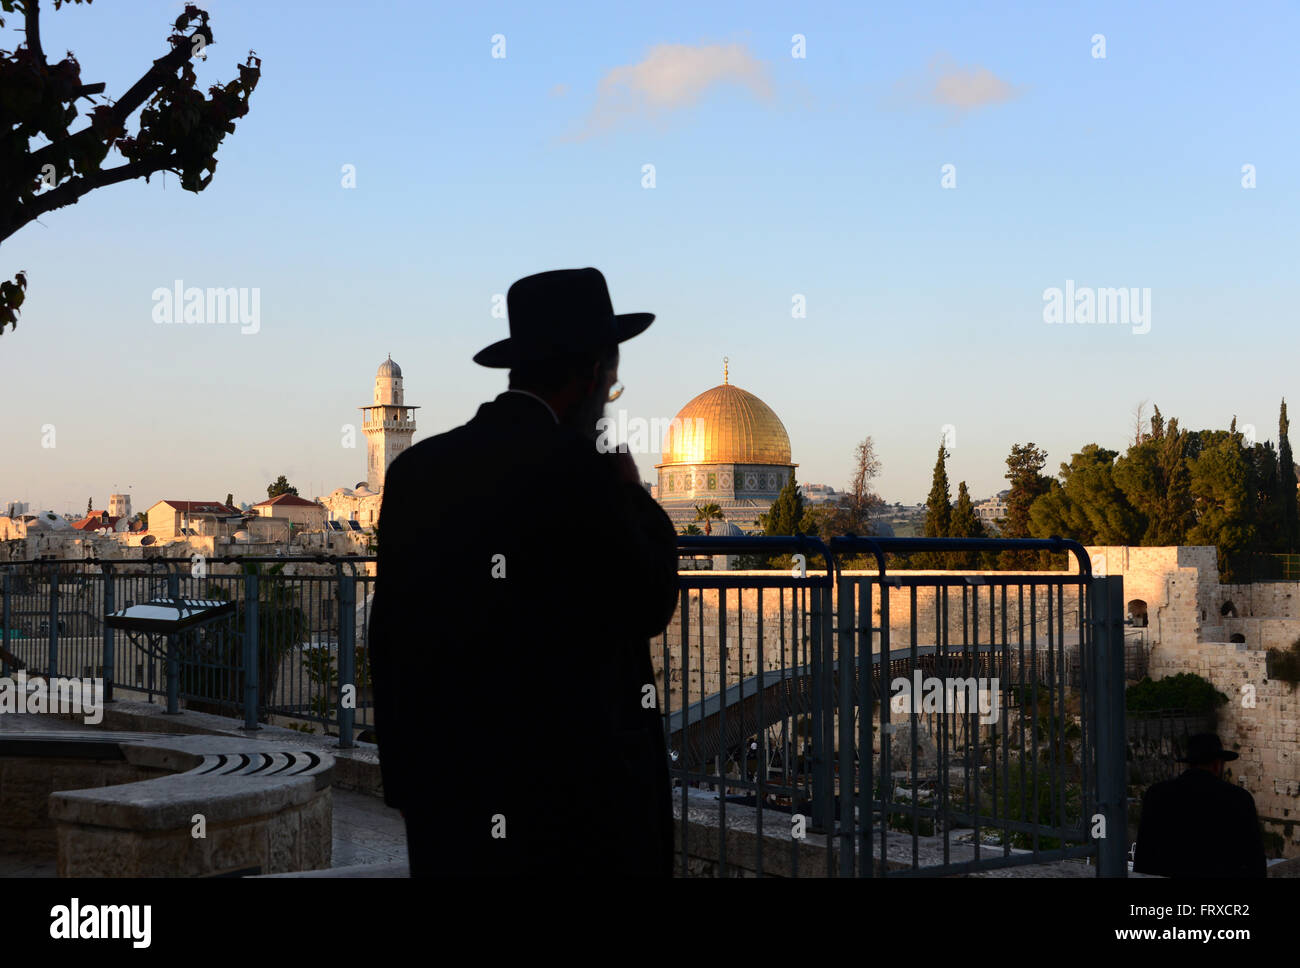 view from south to the Dome of the Rock, Jerusalem, Israel - Stock Image